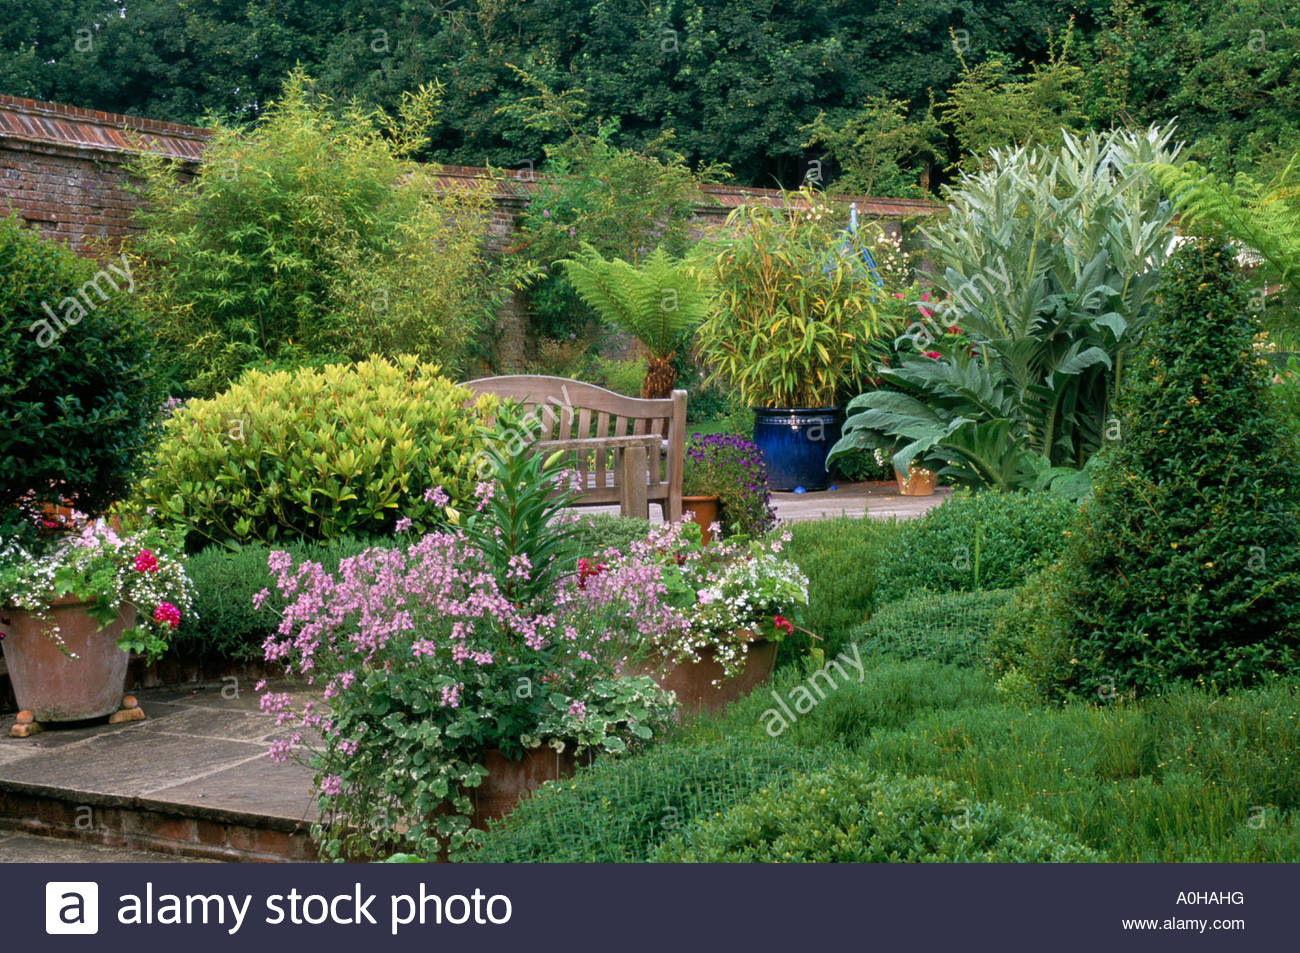 Hampshire Design Pamela Woods Raised Patio In Walled Garden With Stock Photo Royalty Free Image ...